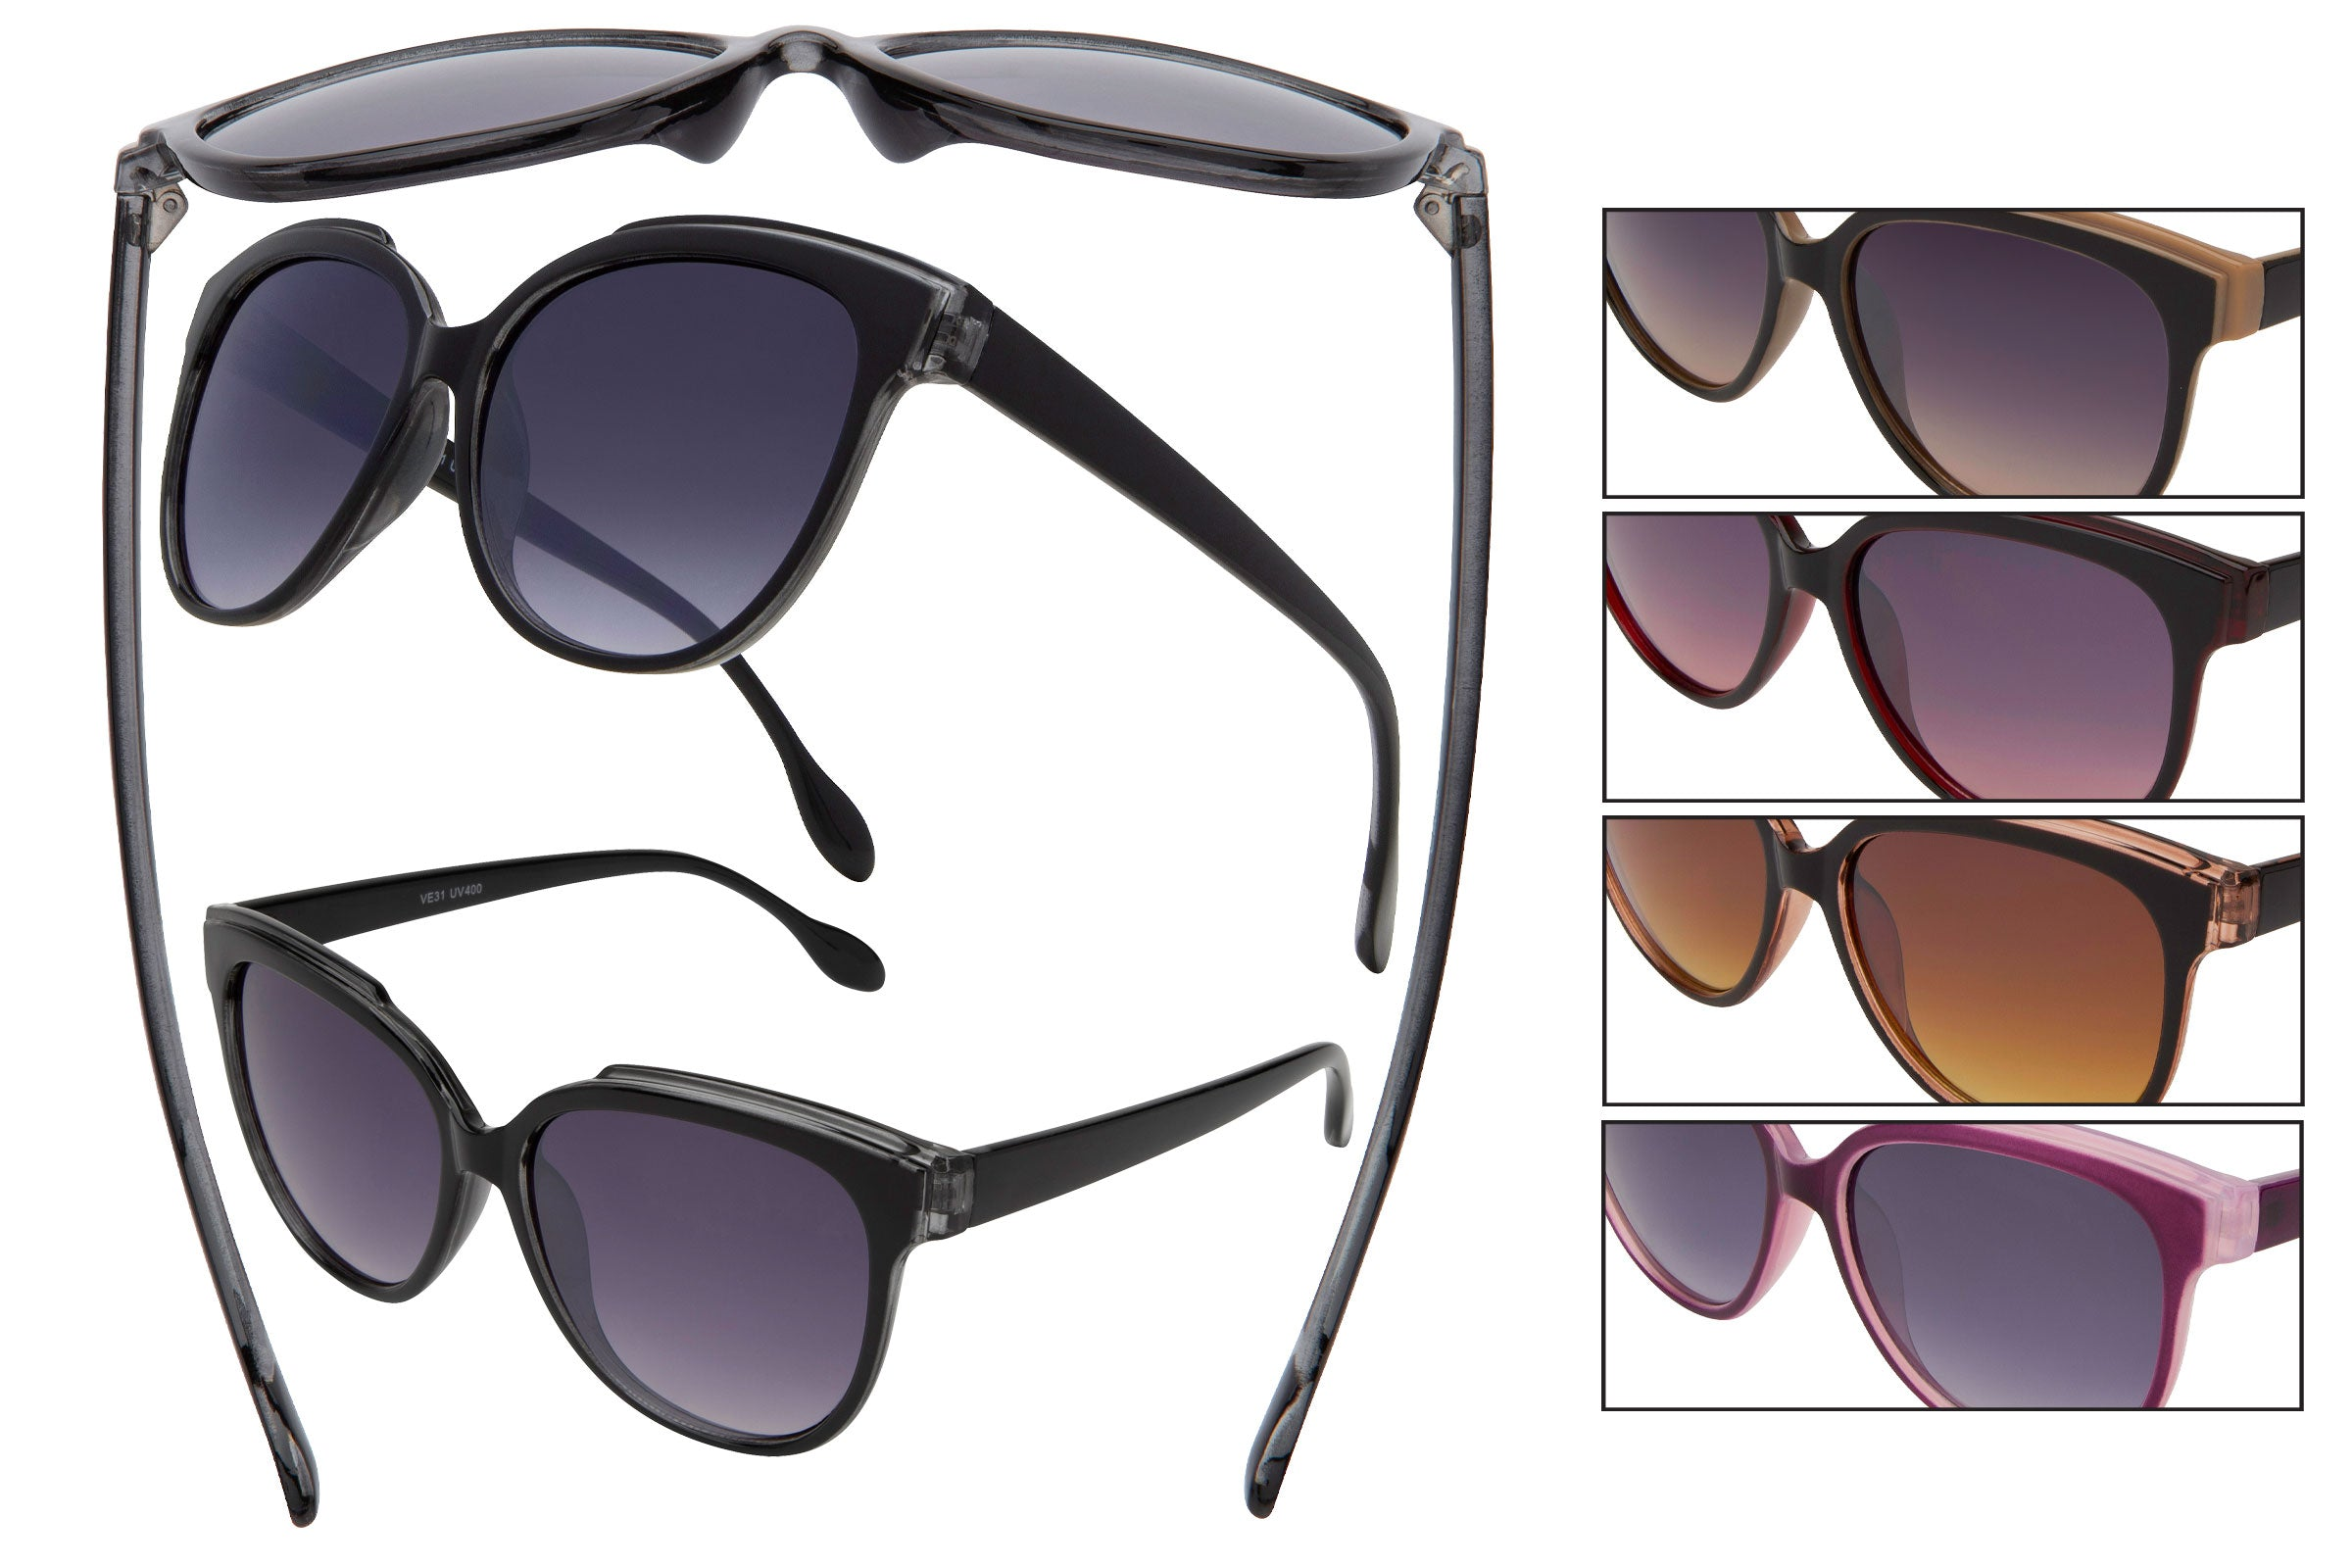 VE31 - Women's Fashion Sunglasses